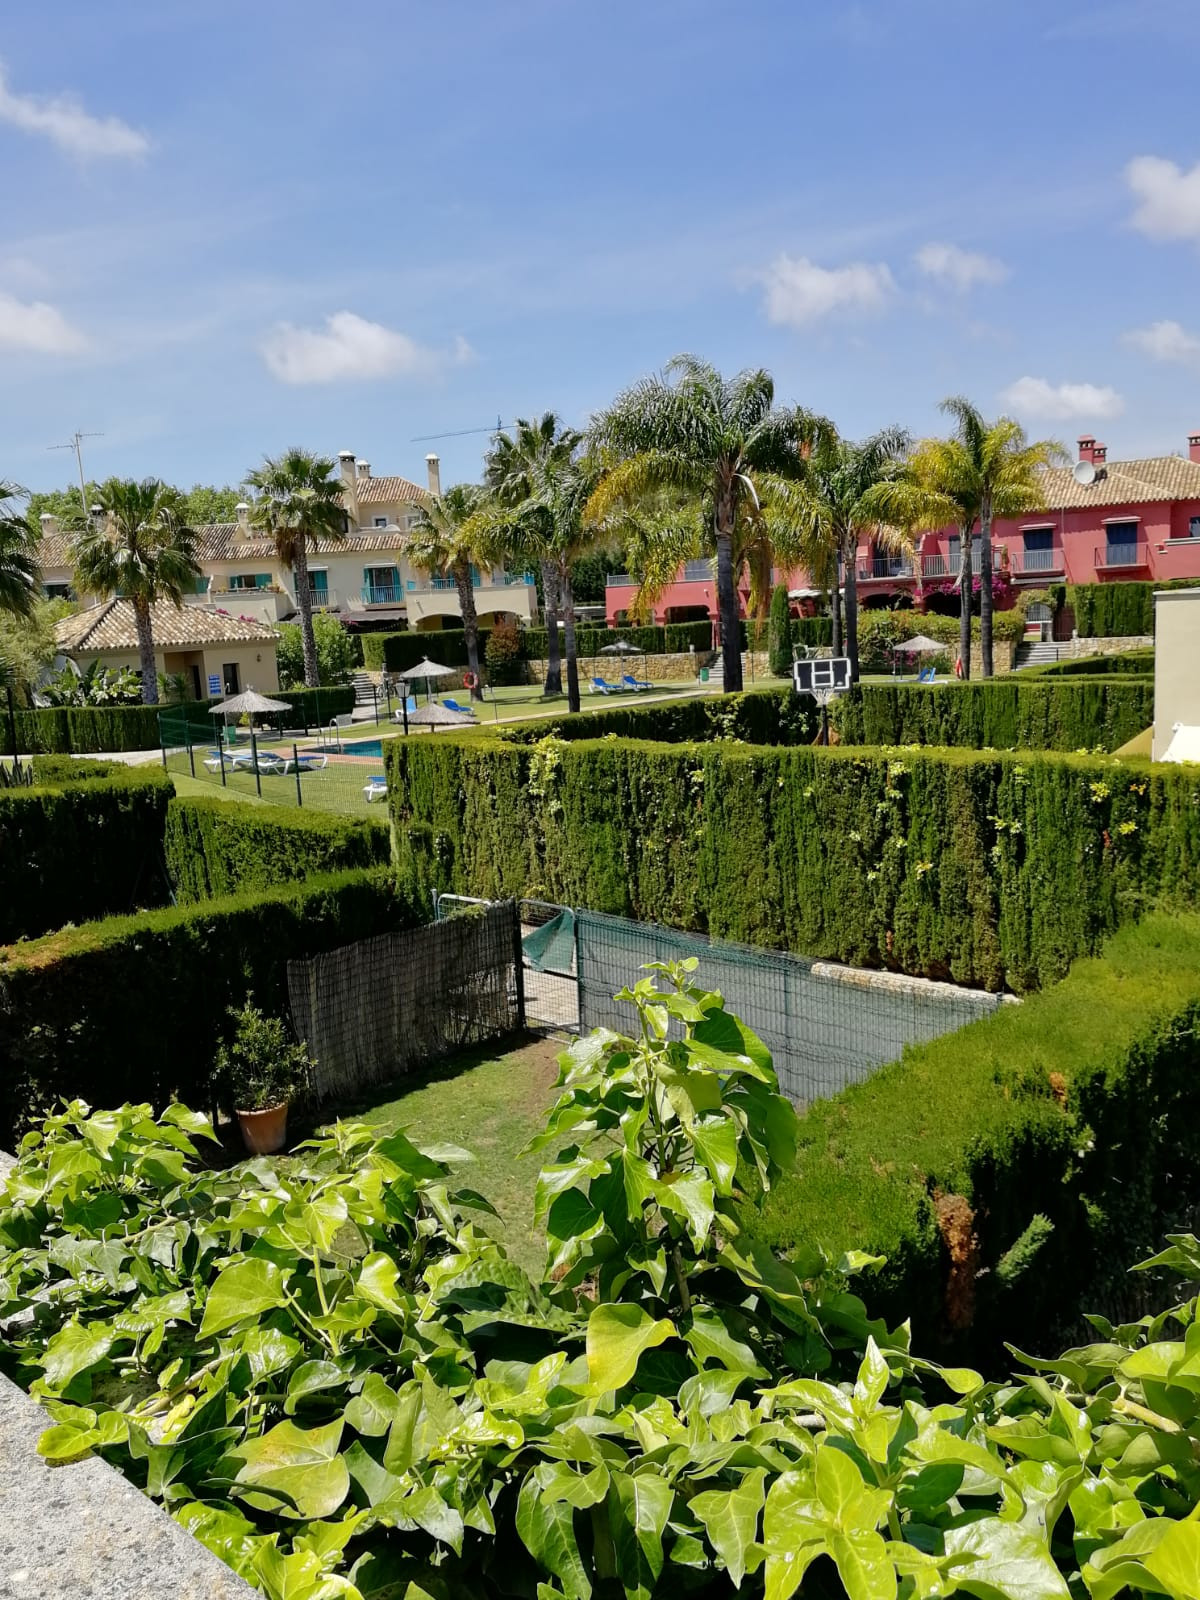 RENTED AND NOT AVAILABLE FOR SALE AT THE MOMENT  Semi-detached villa for sale in Sotogrande Costa, c,Spain